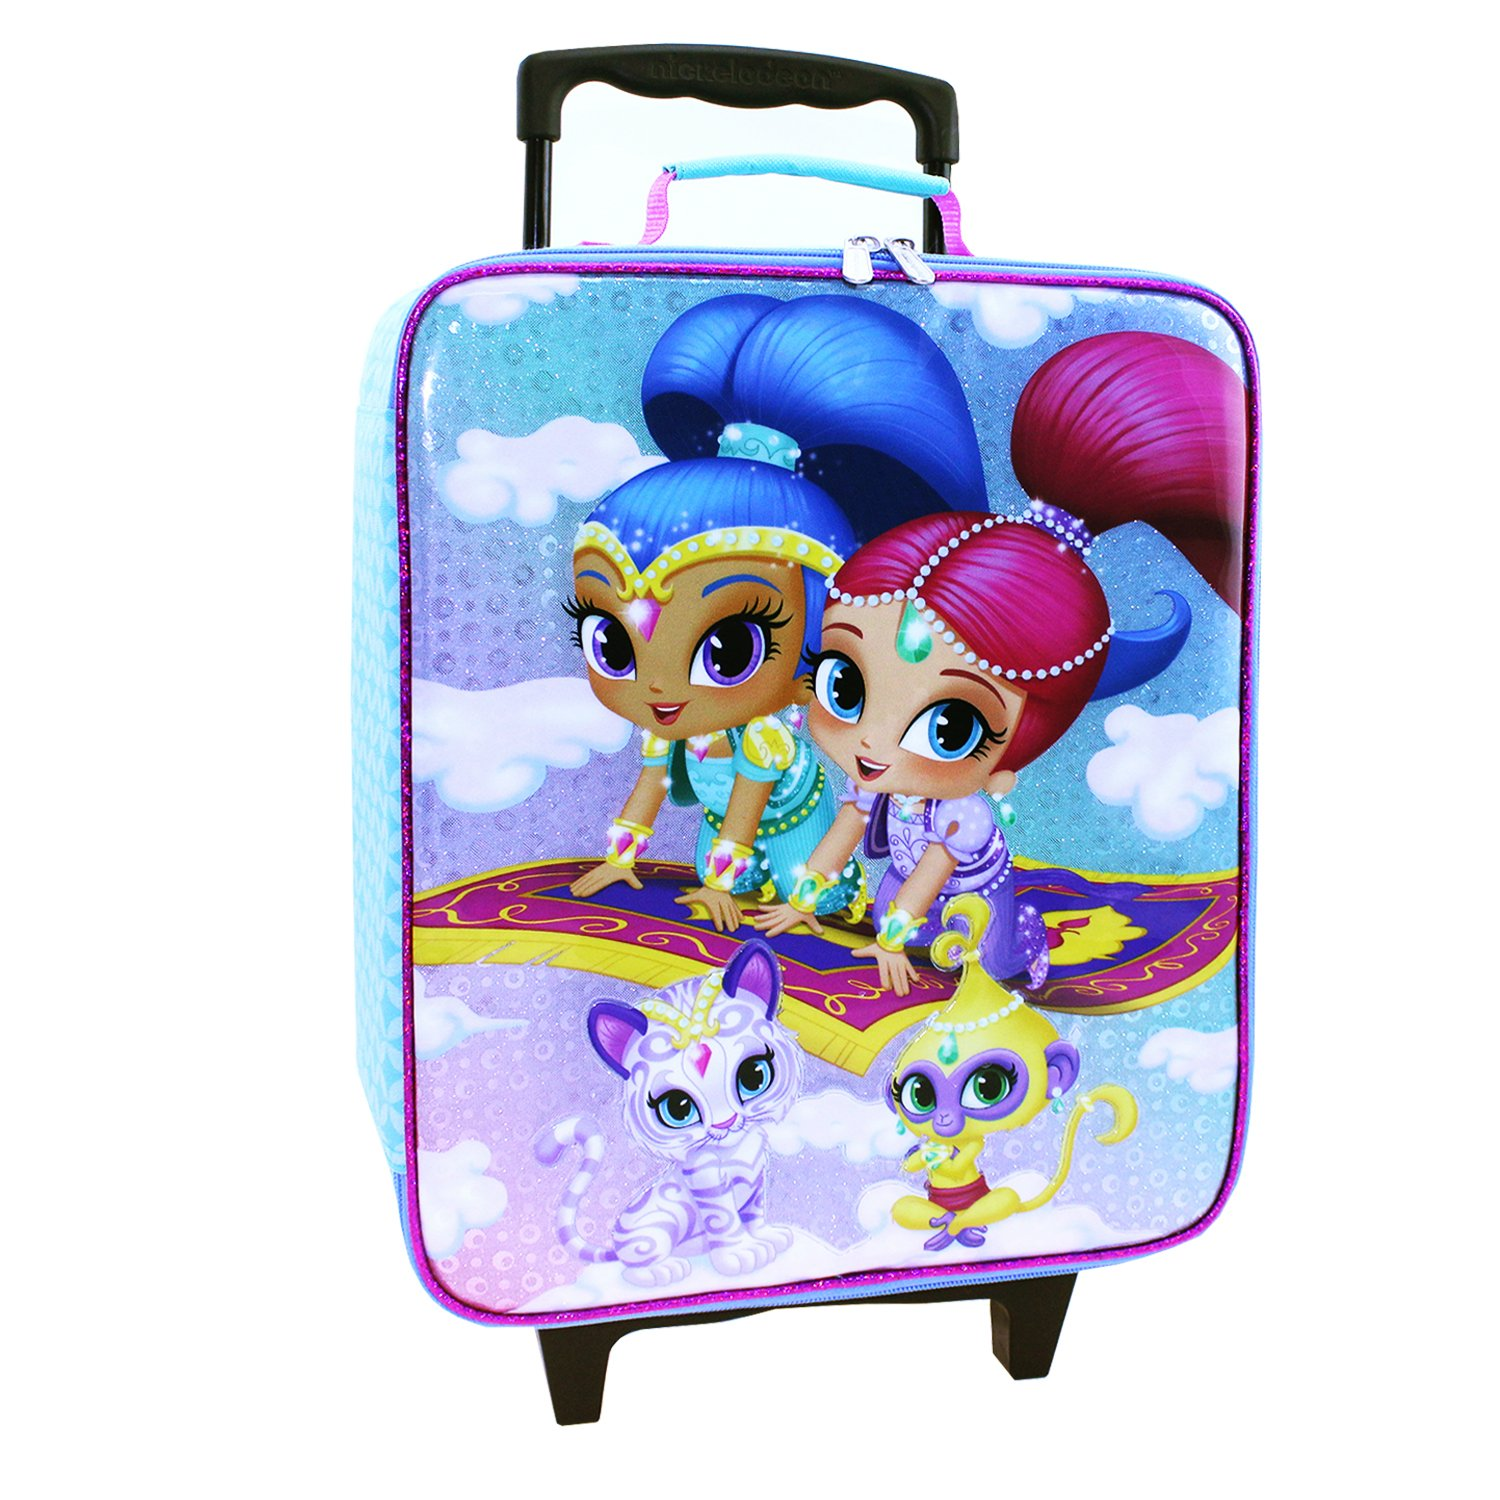 Nickelodeon Girls' Shimmer and Shine Pilot Case, Blue SS29759-SC-BL00